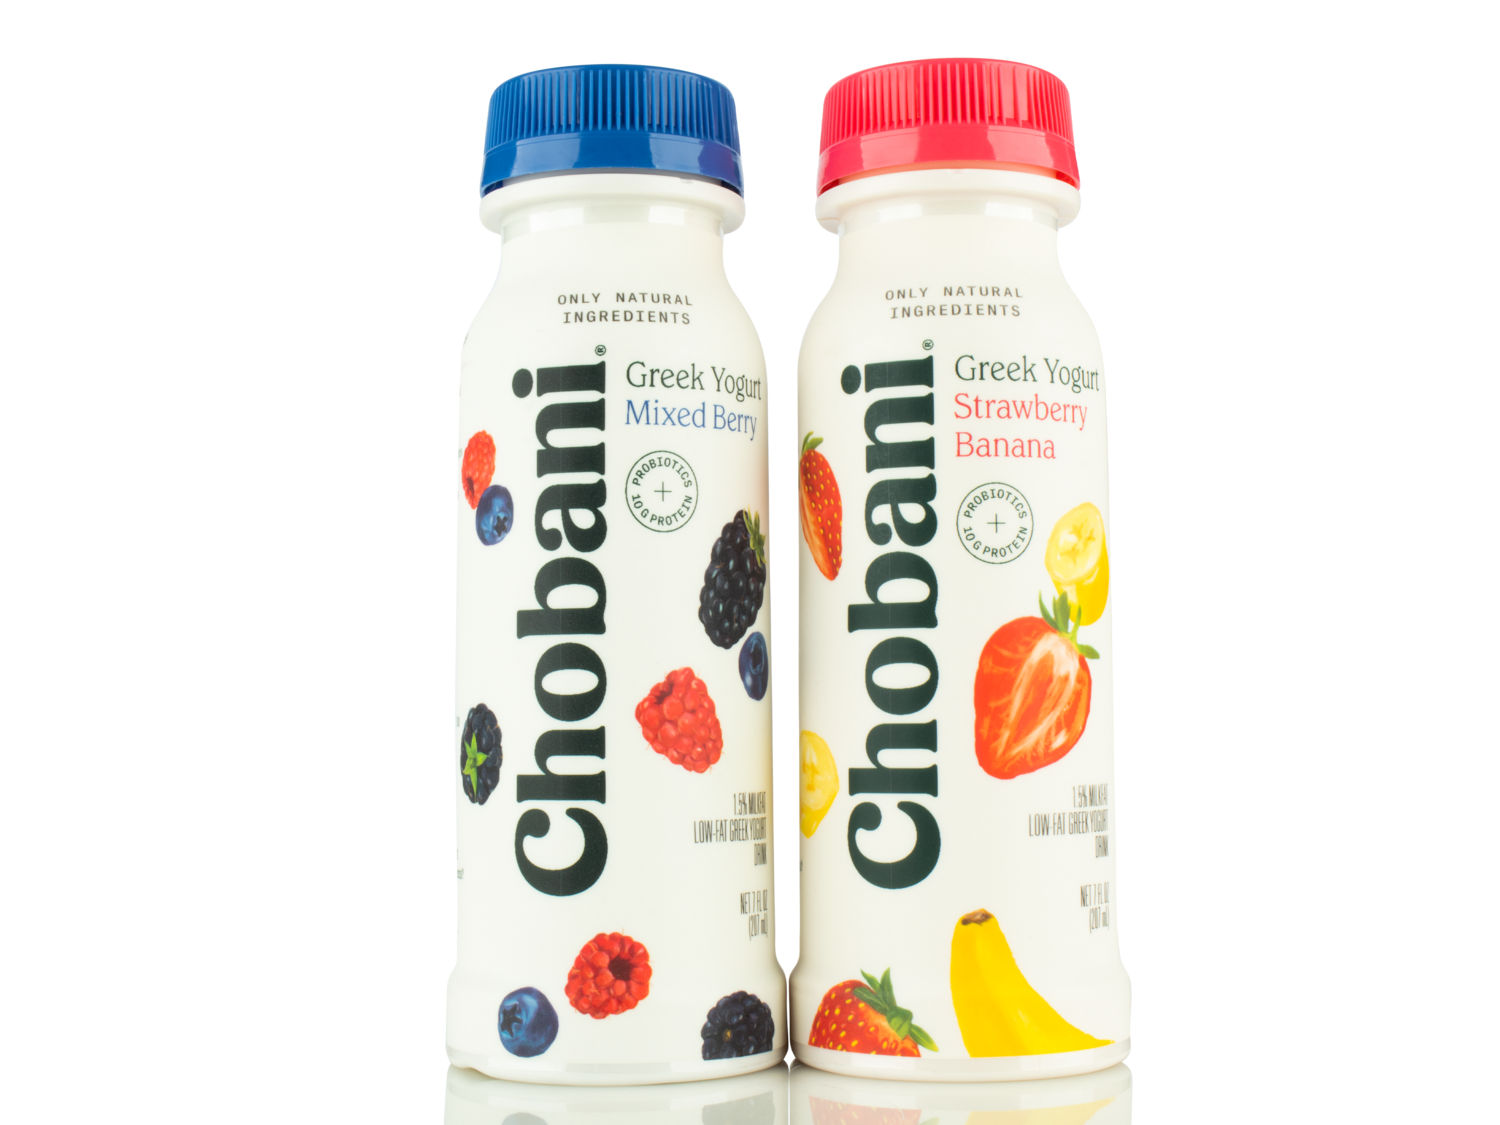 Chobani's 2017 Rebranding Was a Success For One Key Reason: Differentiation